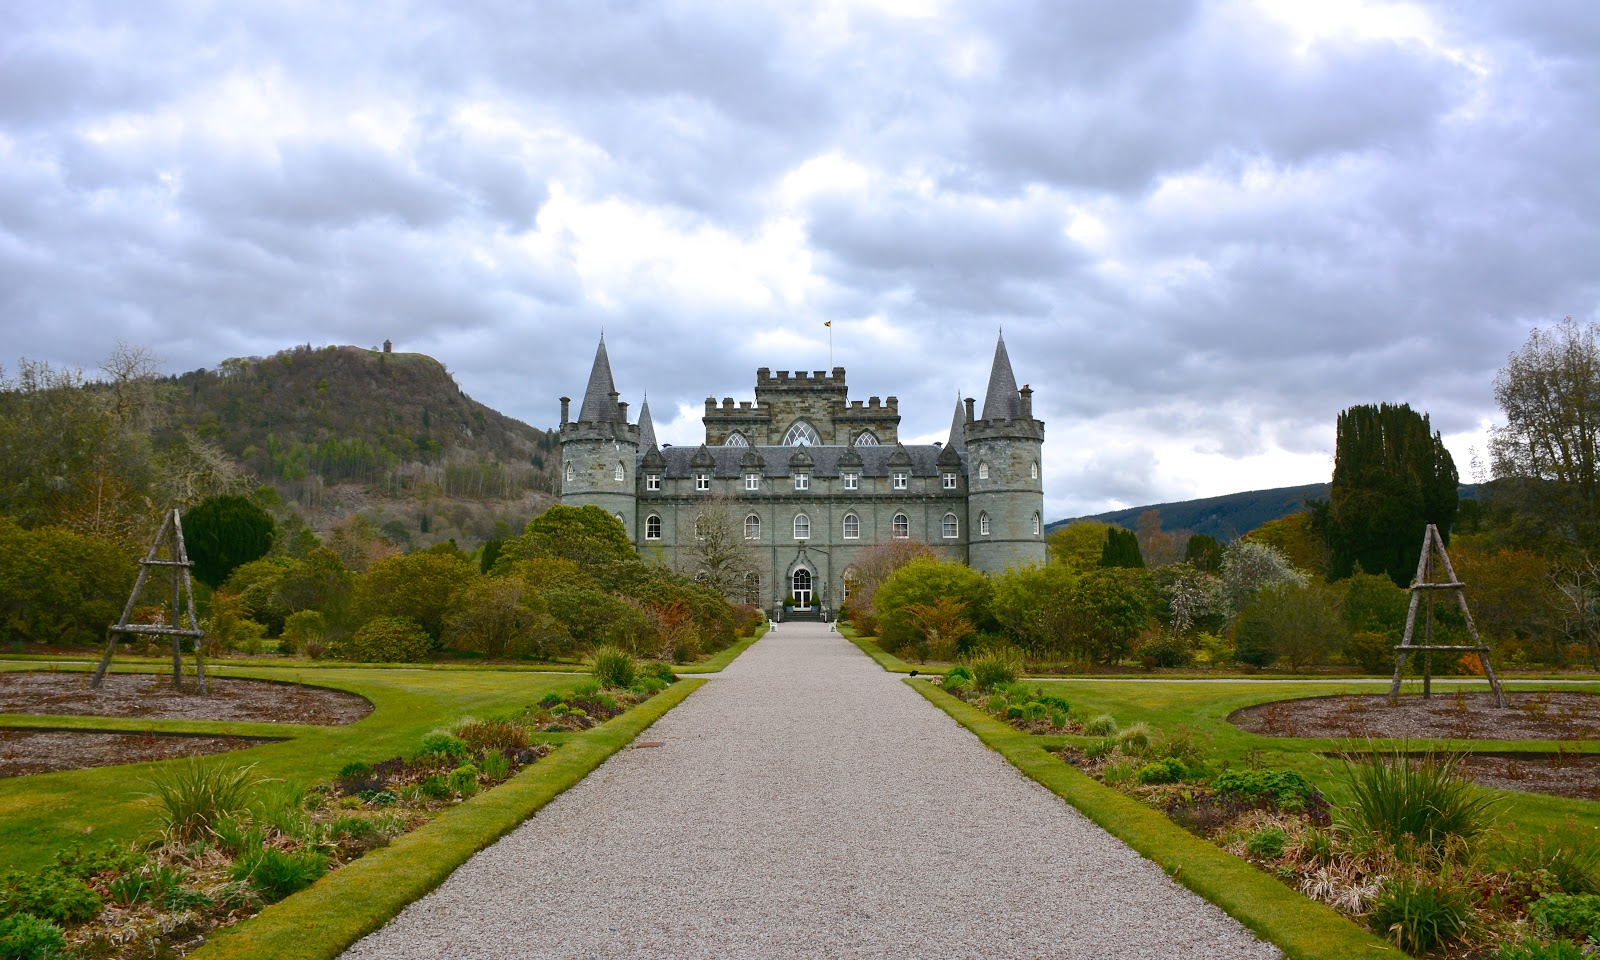 Inverary Castle in Argyll, Scotland